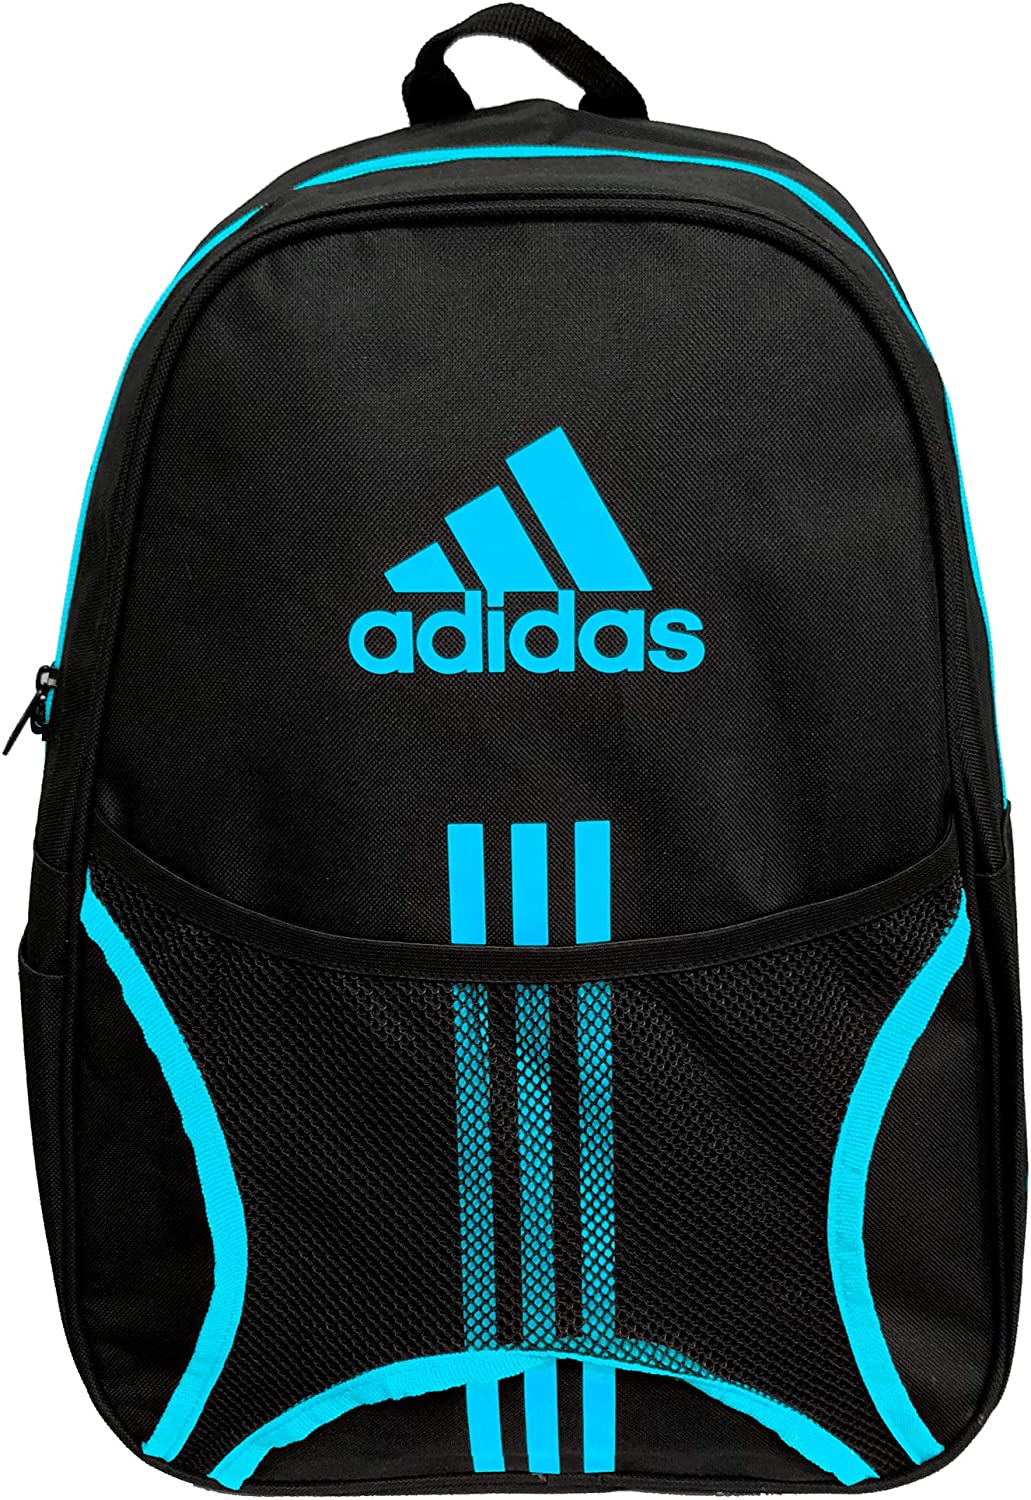 adidas Mochila Pádel Backpack Club